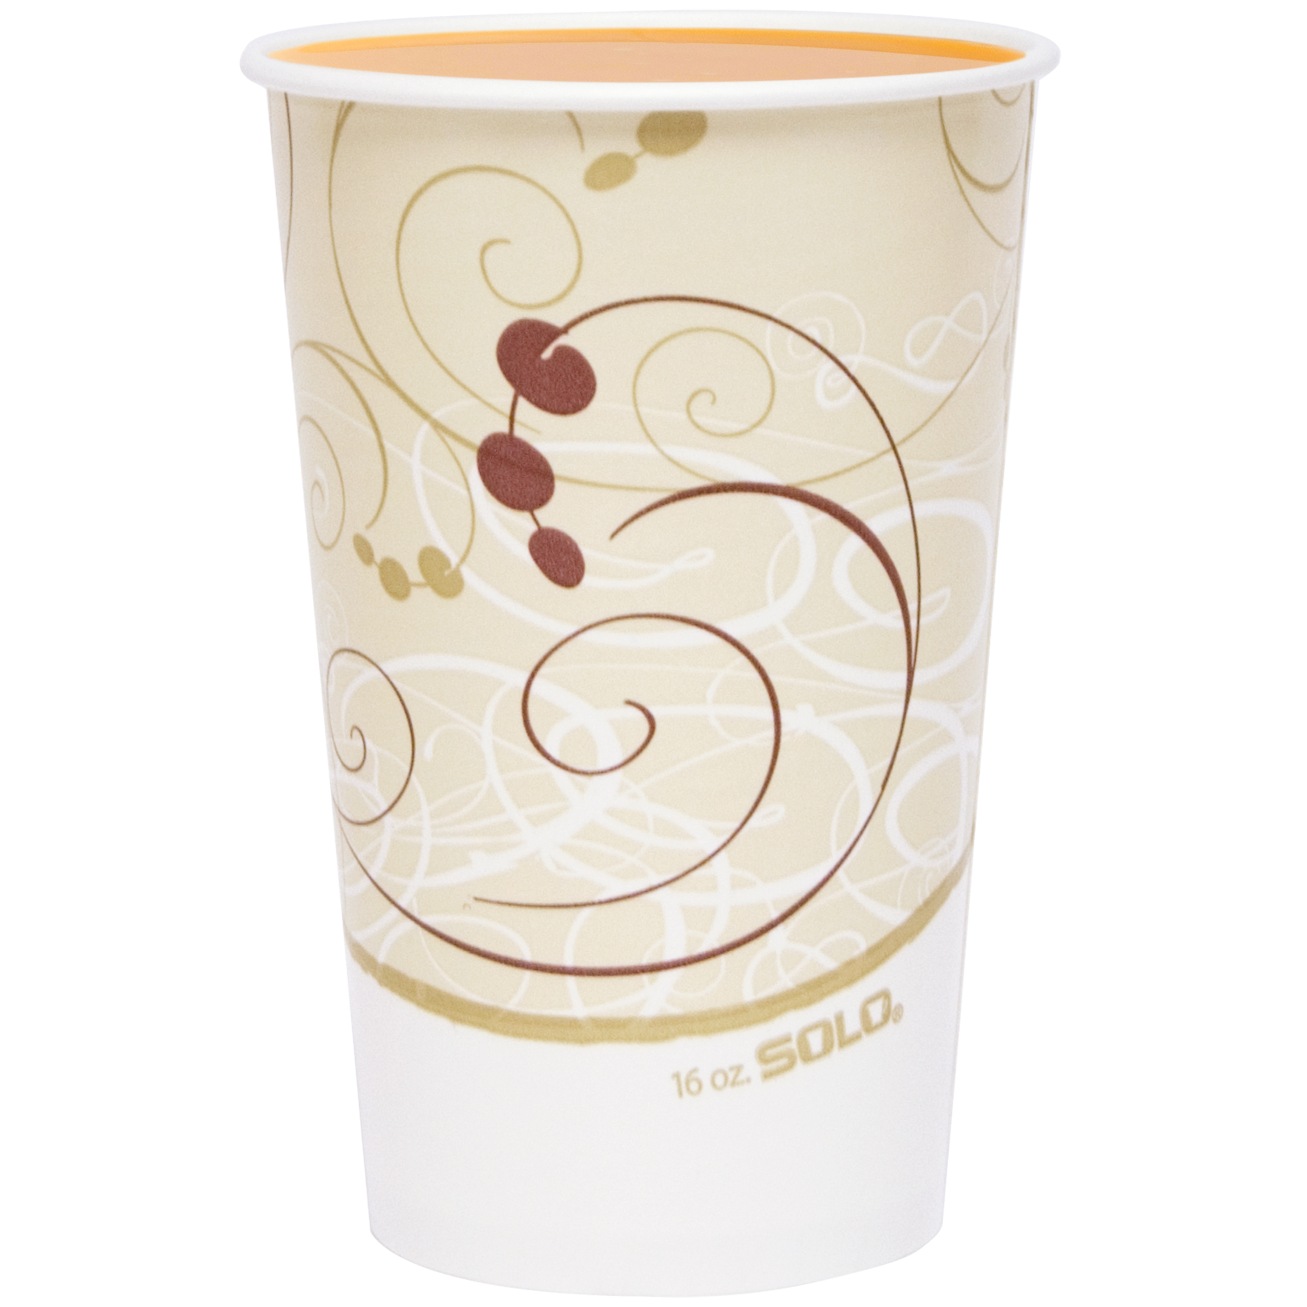 Cold beverage in Solo® DSP Paper cup